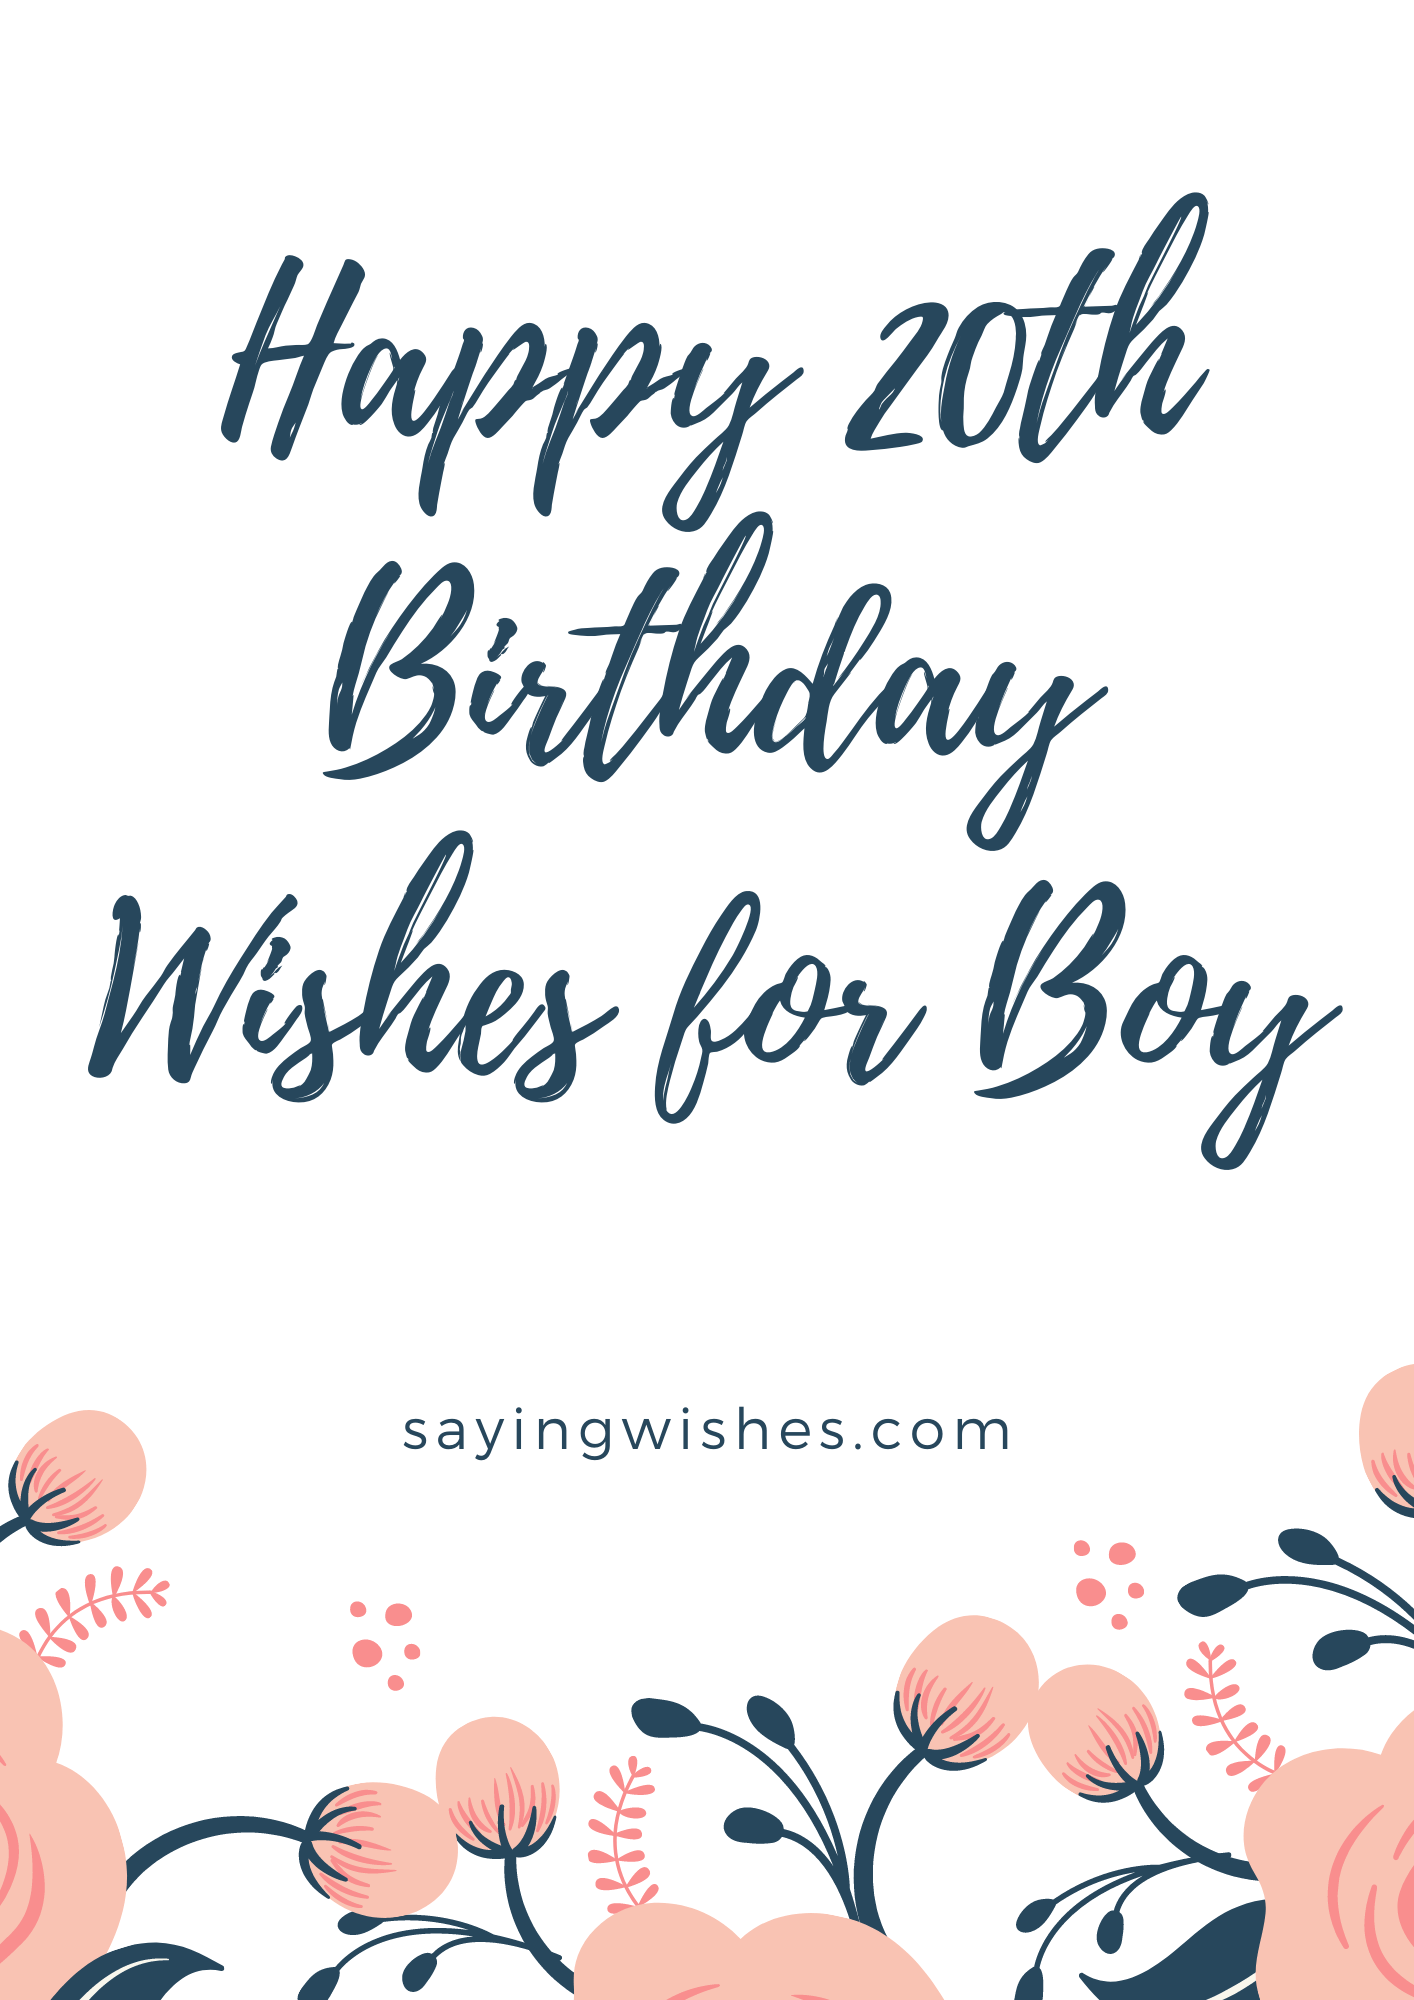 20th bday wishes for boy